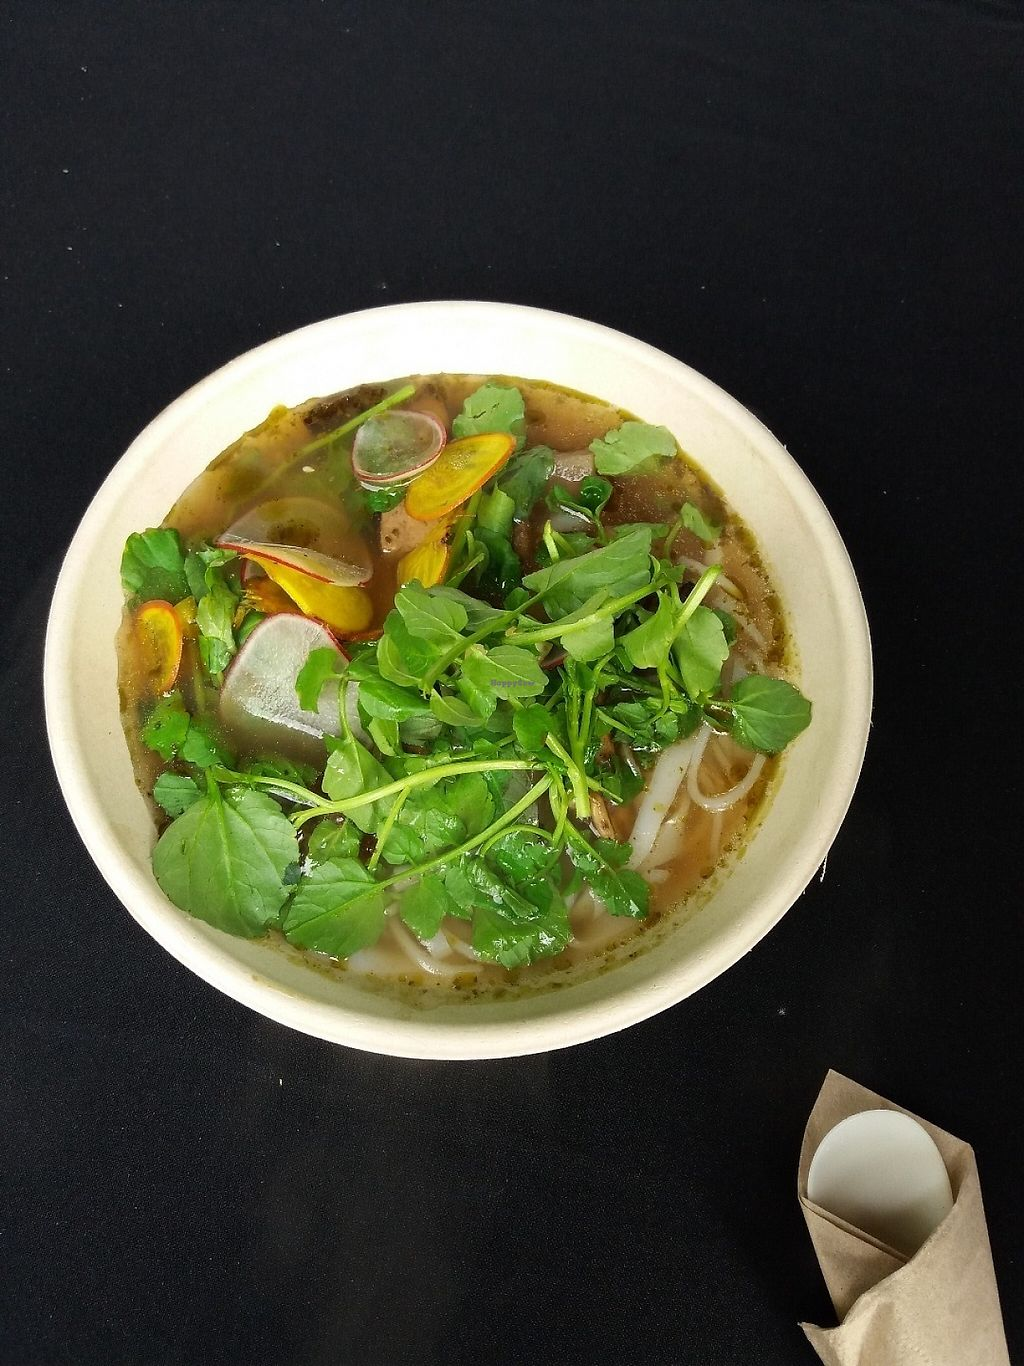 """Photo of A White Saga  by <a href=""""/members/profile/veganvirtues"""">veganvirtues</a> <br/>Pho was delicious <br/> May 12, 2017  - <a href='/contact/abuse/image/91647/257994'>Report</a>"""